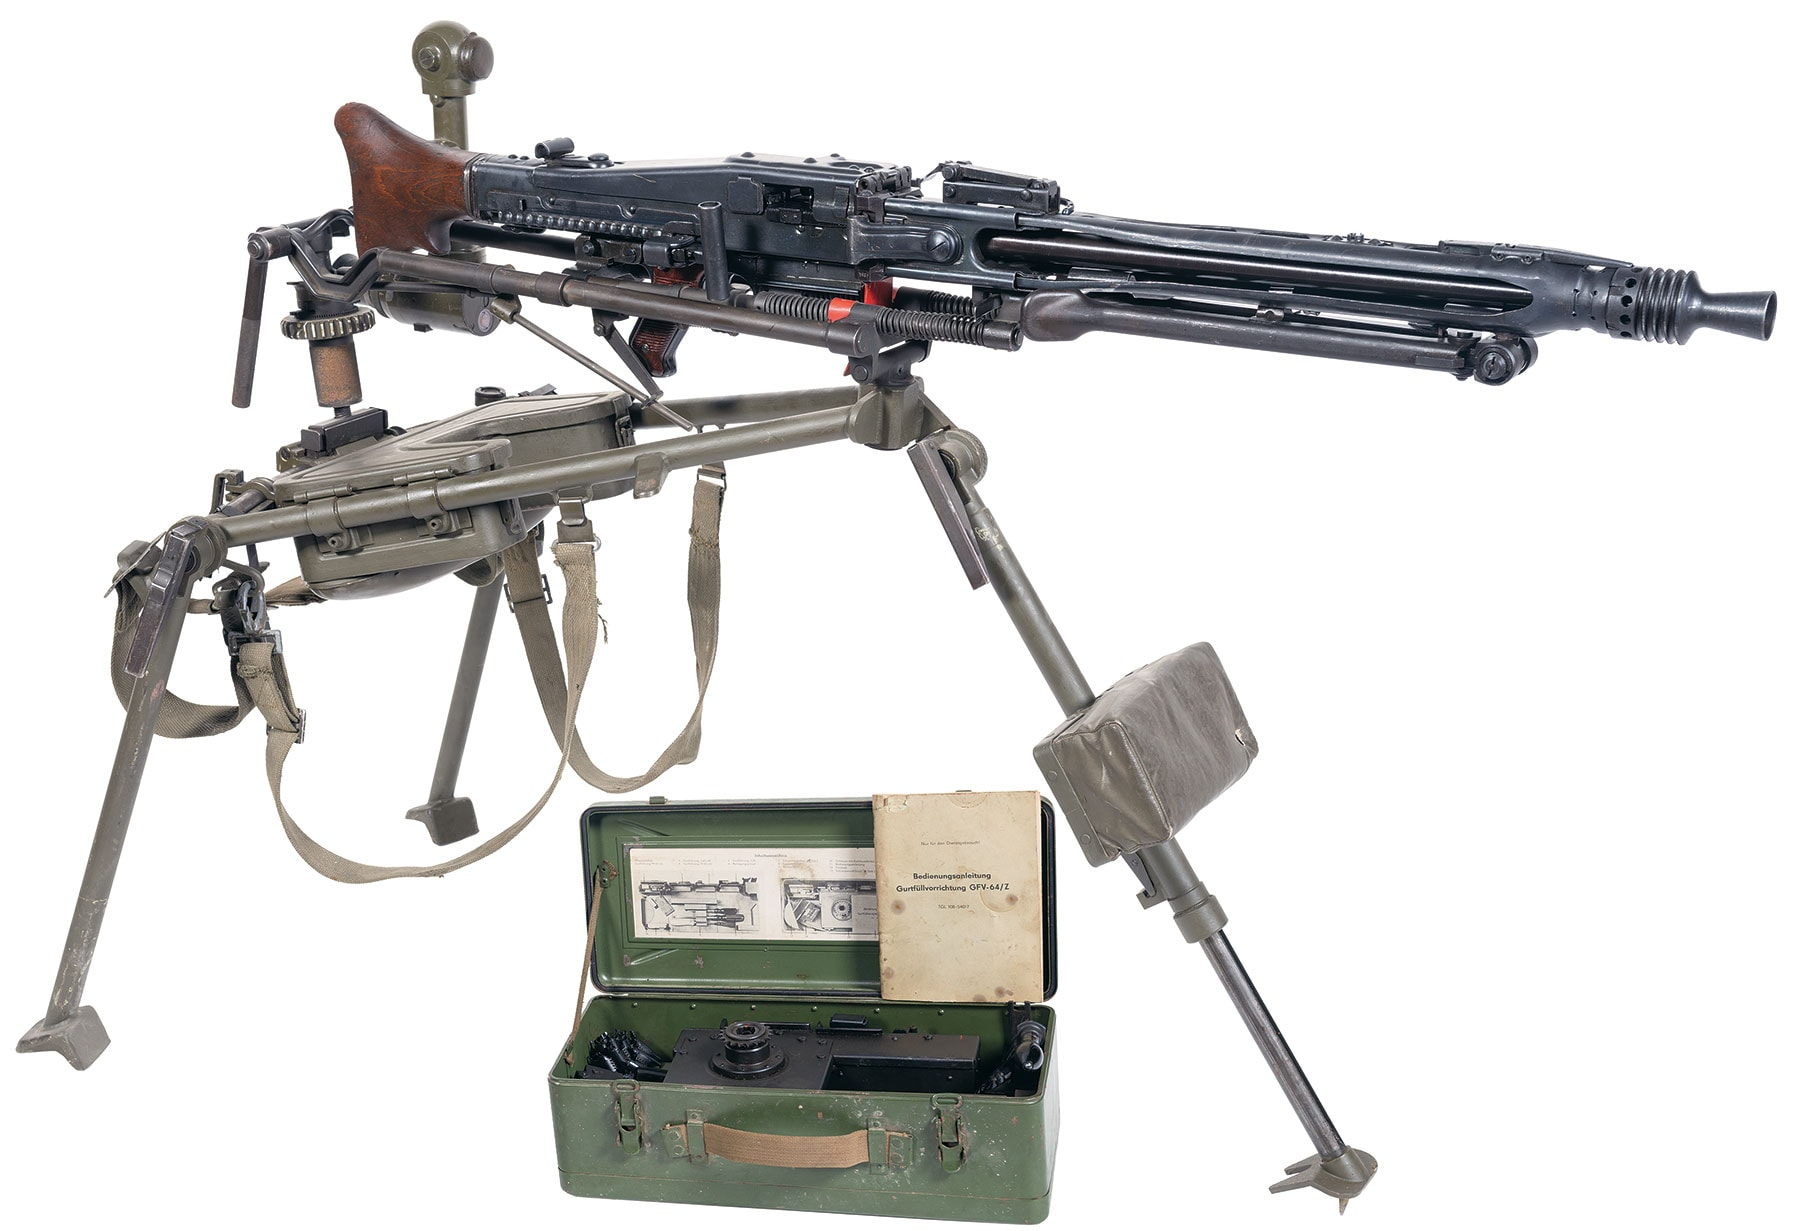 If belt-fed at 1,200 rpm is more your thing, how about this Gustloff Werke-Suhl MG42 light machine gun complete with a 1944-stamped early wooden buttstock, post war Swiss folding tripod mount, side mounted variable power sight and linker/delinker tool. Estimated Price: $20,000 - $35,000